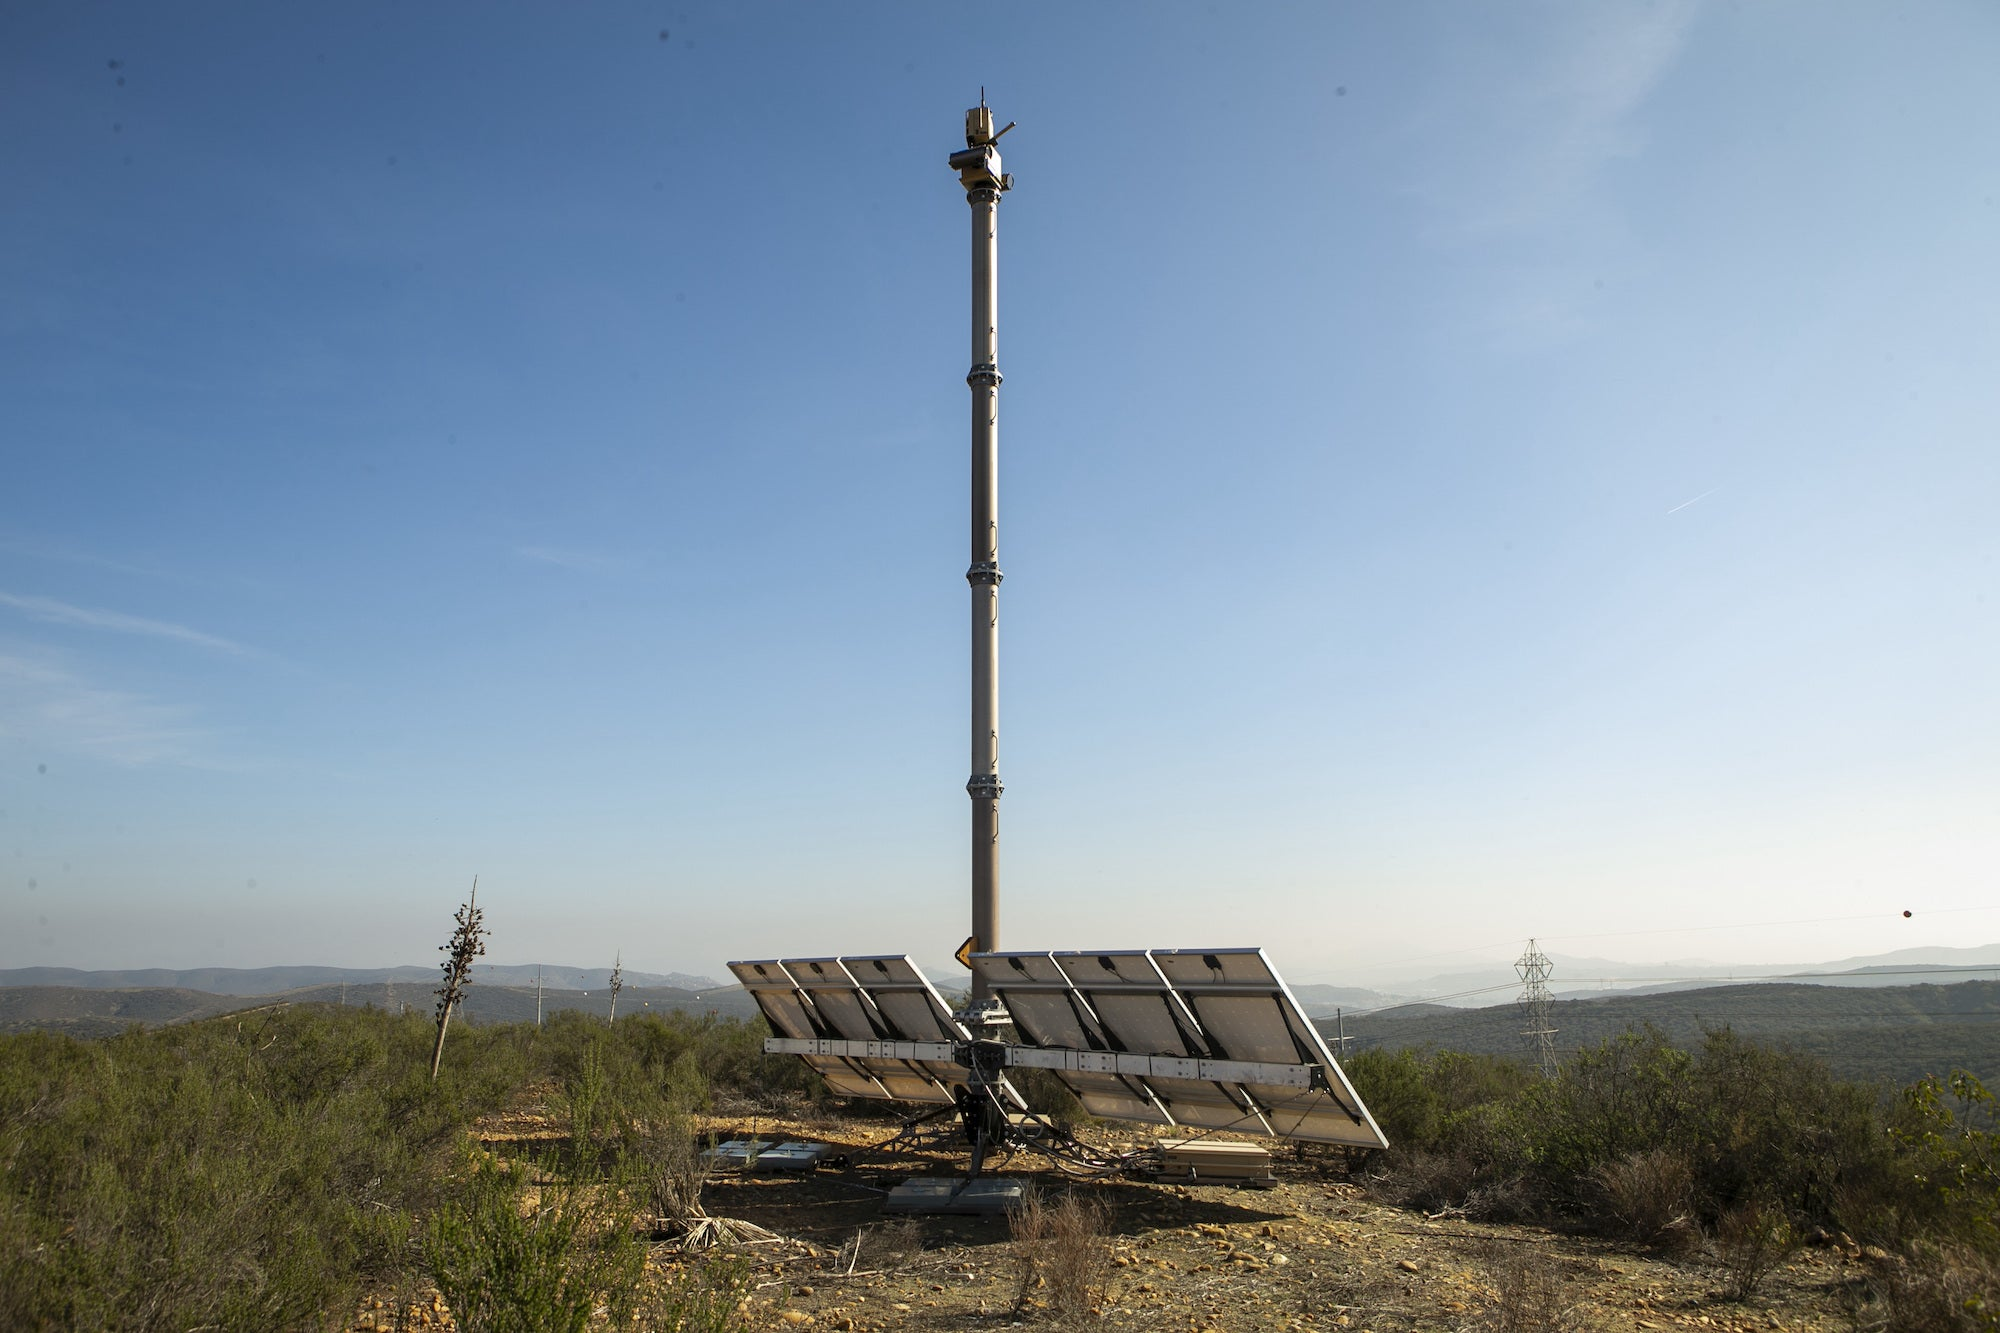 A Texas town approved an AI-powered sentry tower for border security